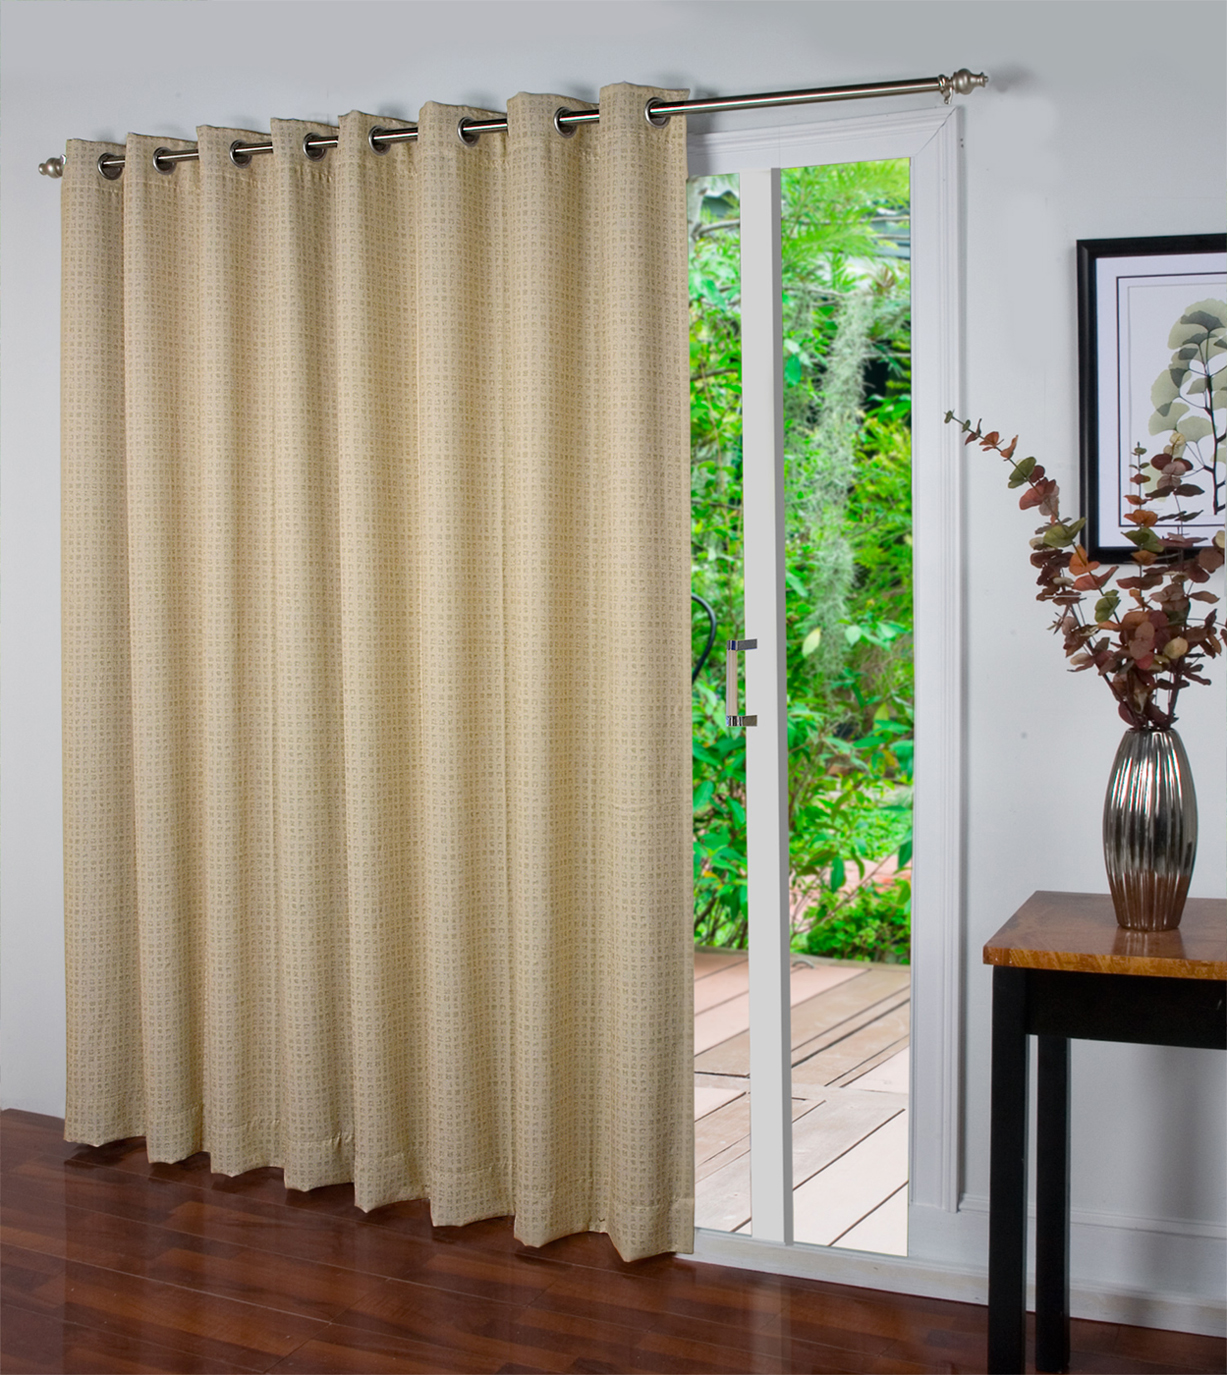 Sliding Door Curtain Patio Door Curtains Thecurtainshop